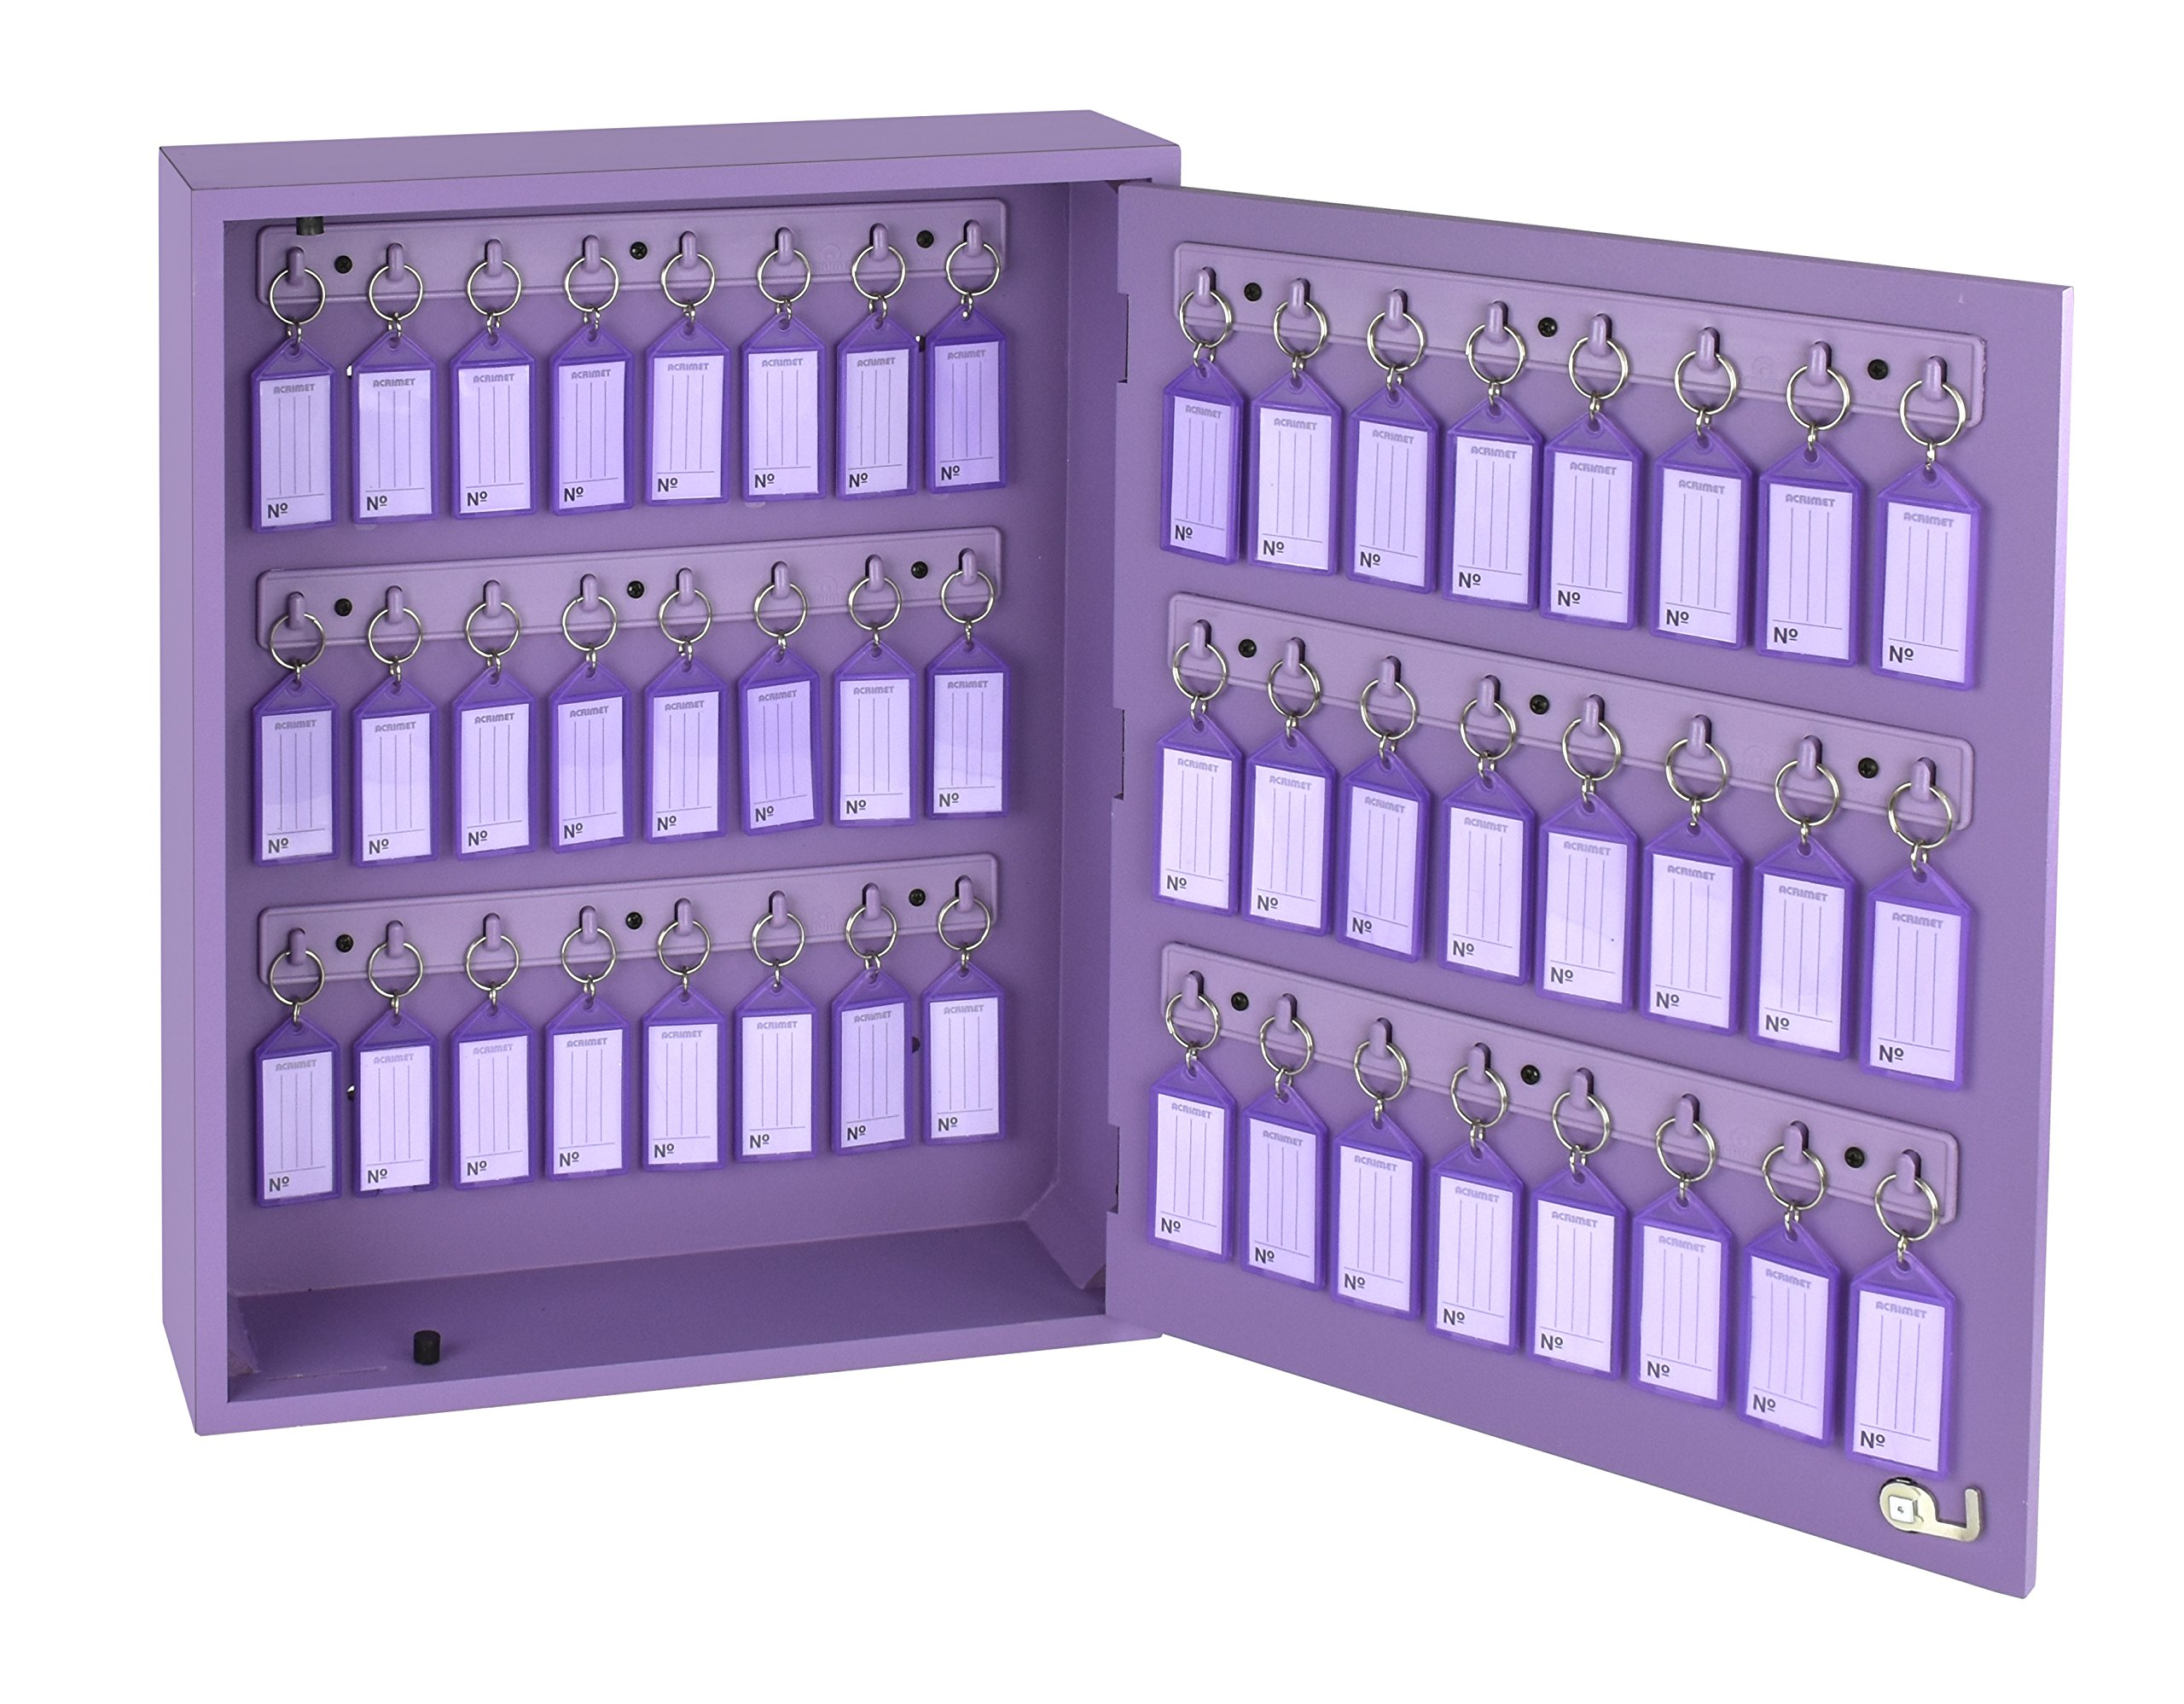 Acrimet Key Cabinet 48 Positions with 48 Key Tags (Purple Color)